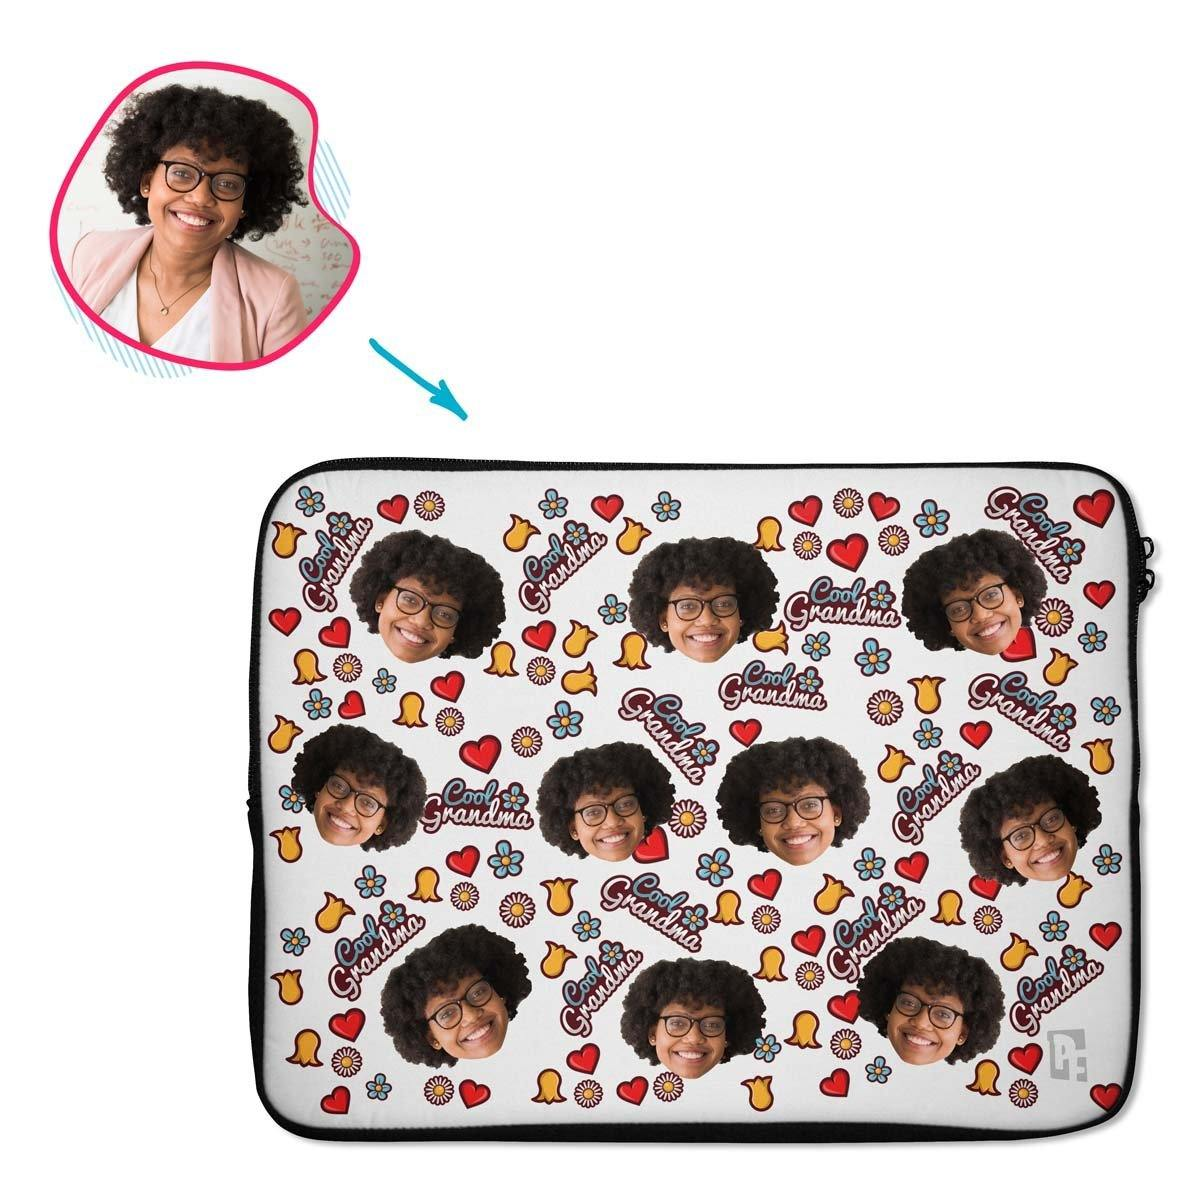 white Cool Grandmother laptop sleeve personalized with photo of face printed on them